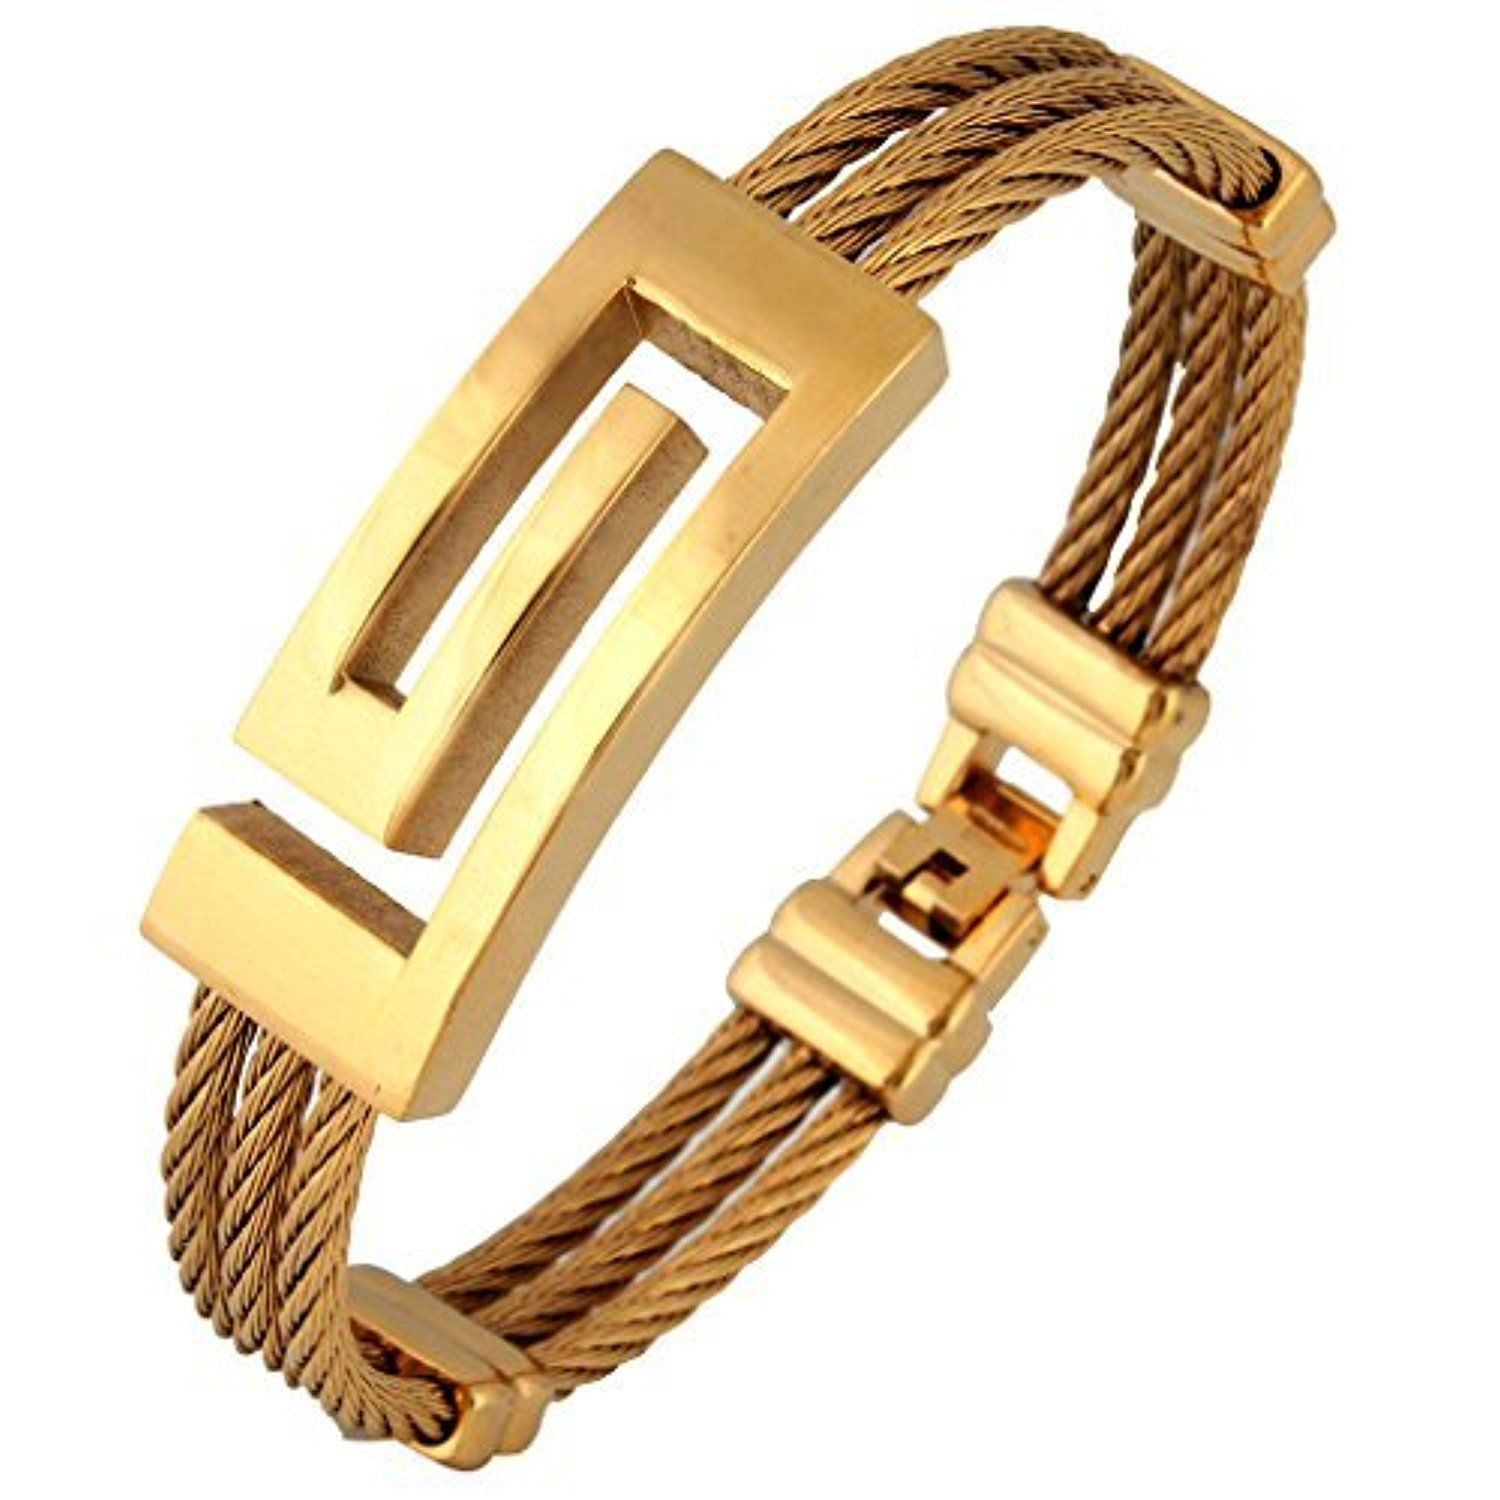 The jewelbox italian designer k gold plated surgical stainless